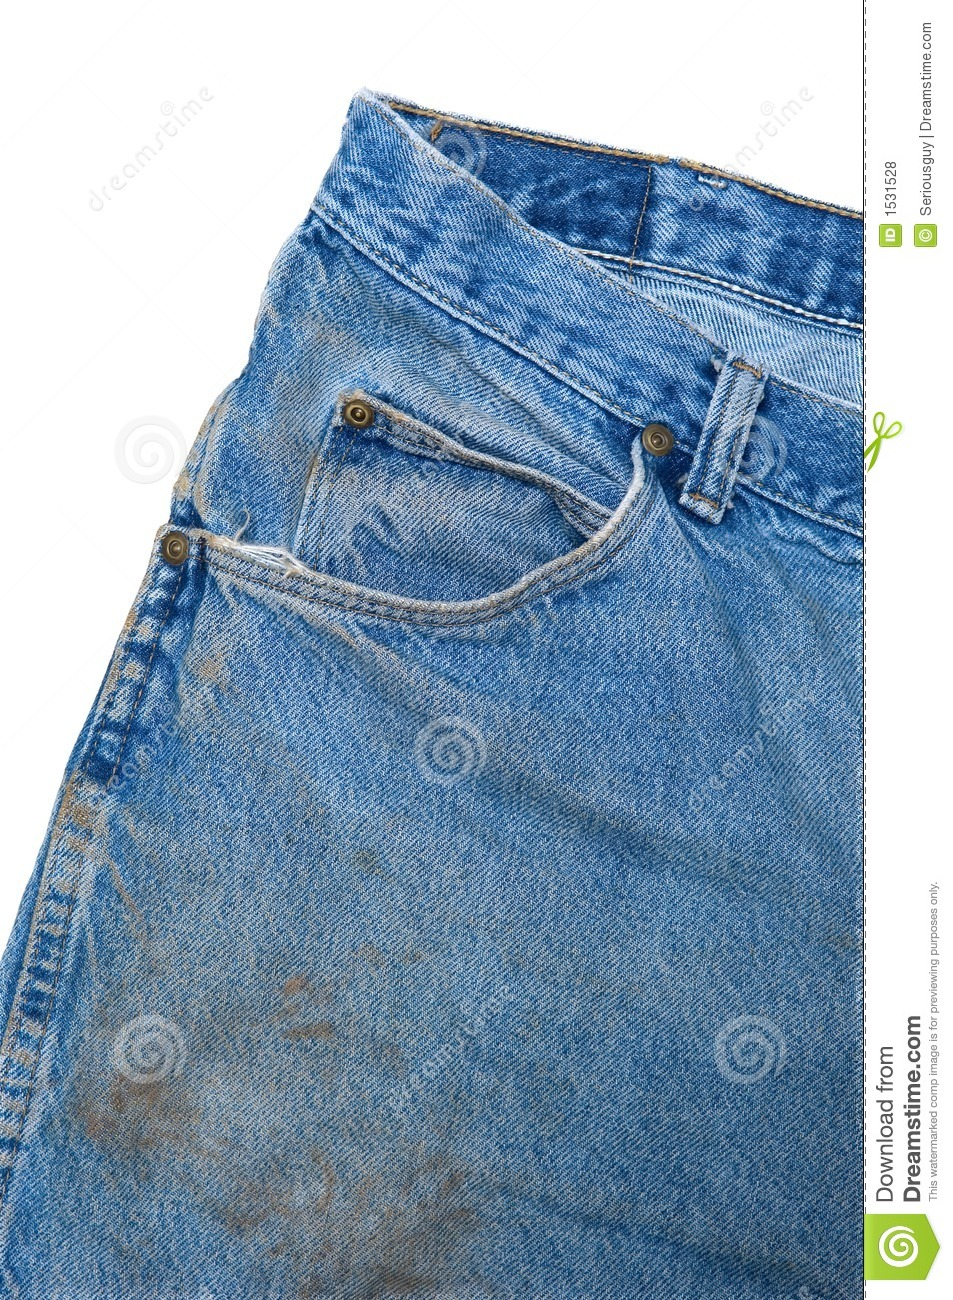 Pocket Detail Of Dirty Blue Jeans Royalty Free Stock Photos   Image